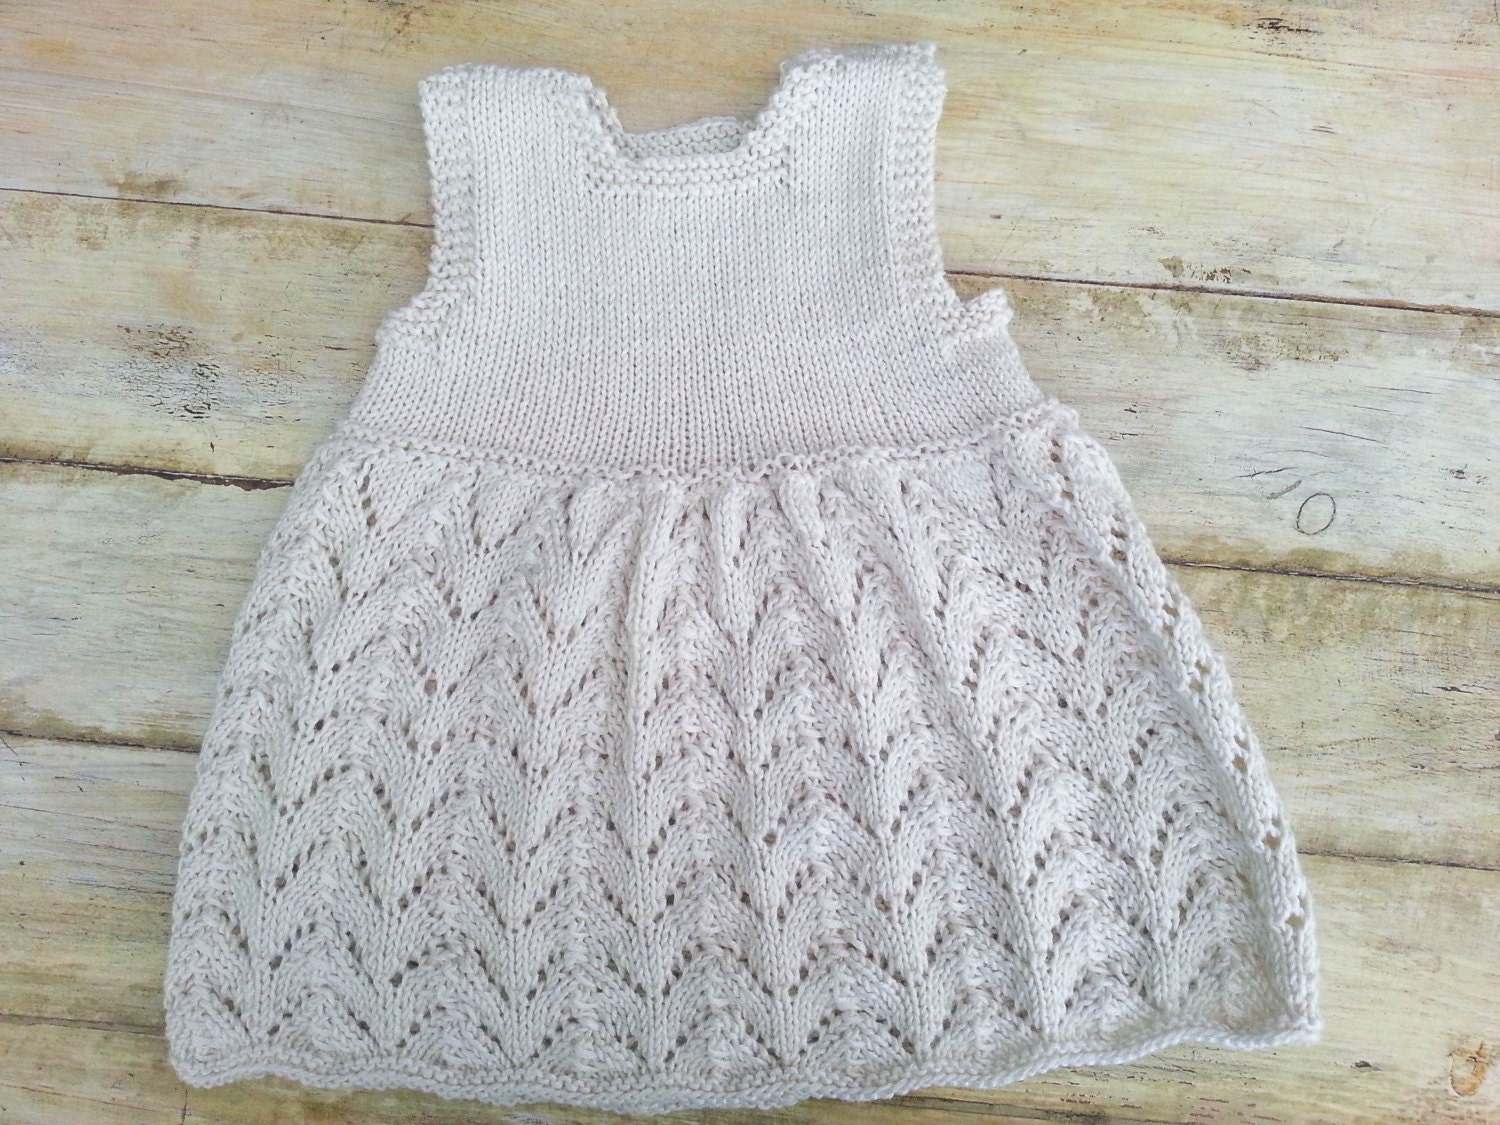 Knitting Patterns Lace Dress : KNITTING PATTERN Baby Lace Dress Modern Baby Lace Dress